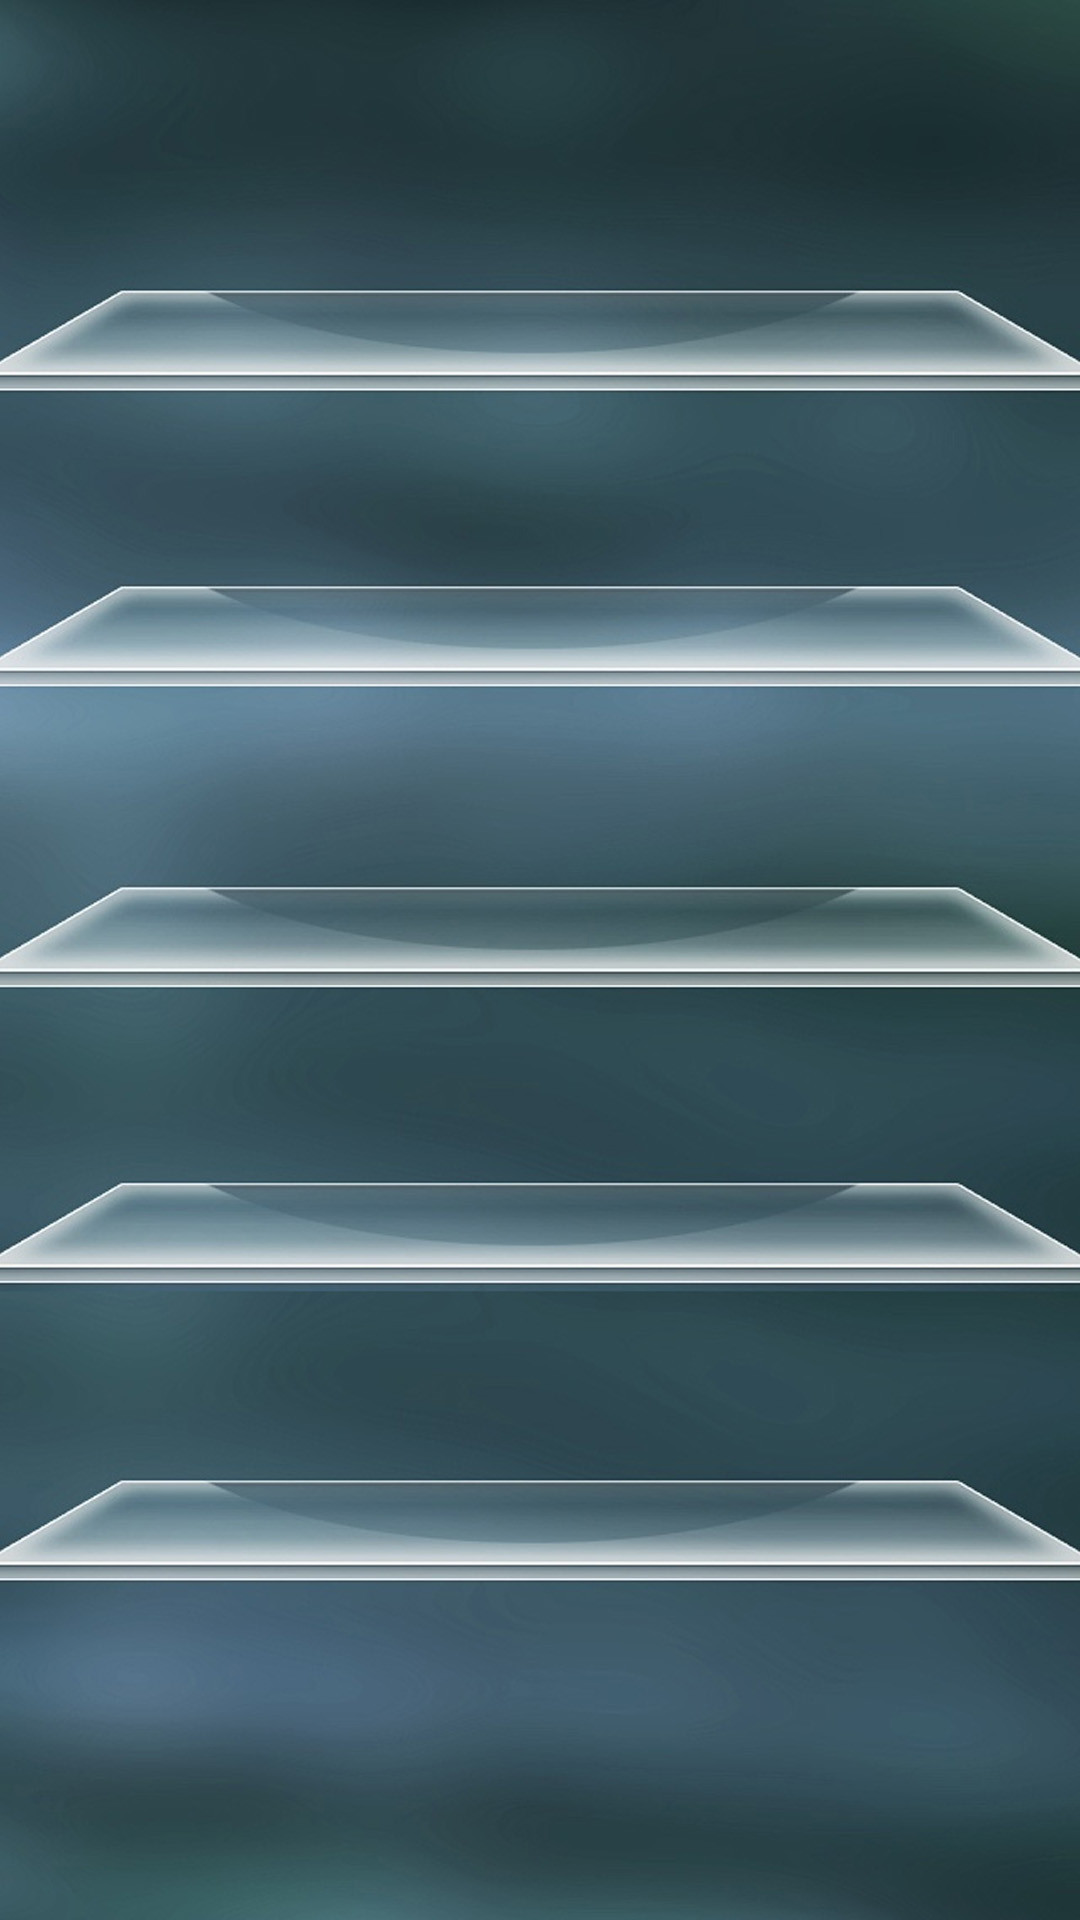 1080x1920 Shelf iPhone 6 Plus Wallpaper 87 | iPhone 6 Plus Wallpapers HD